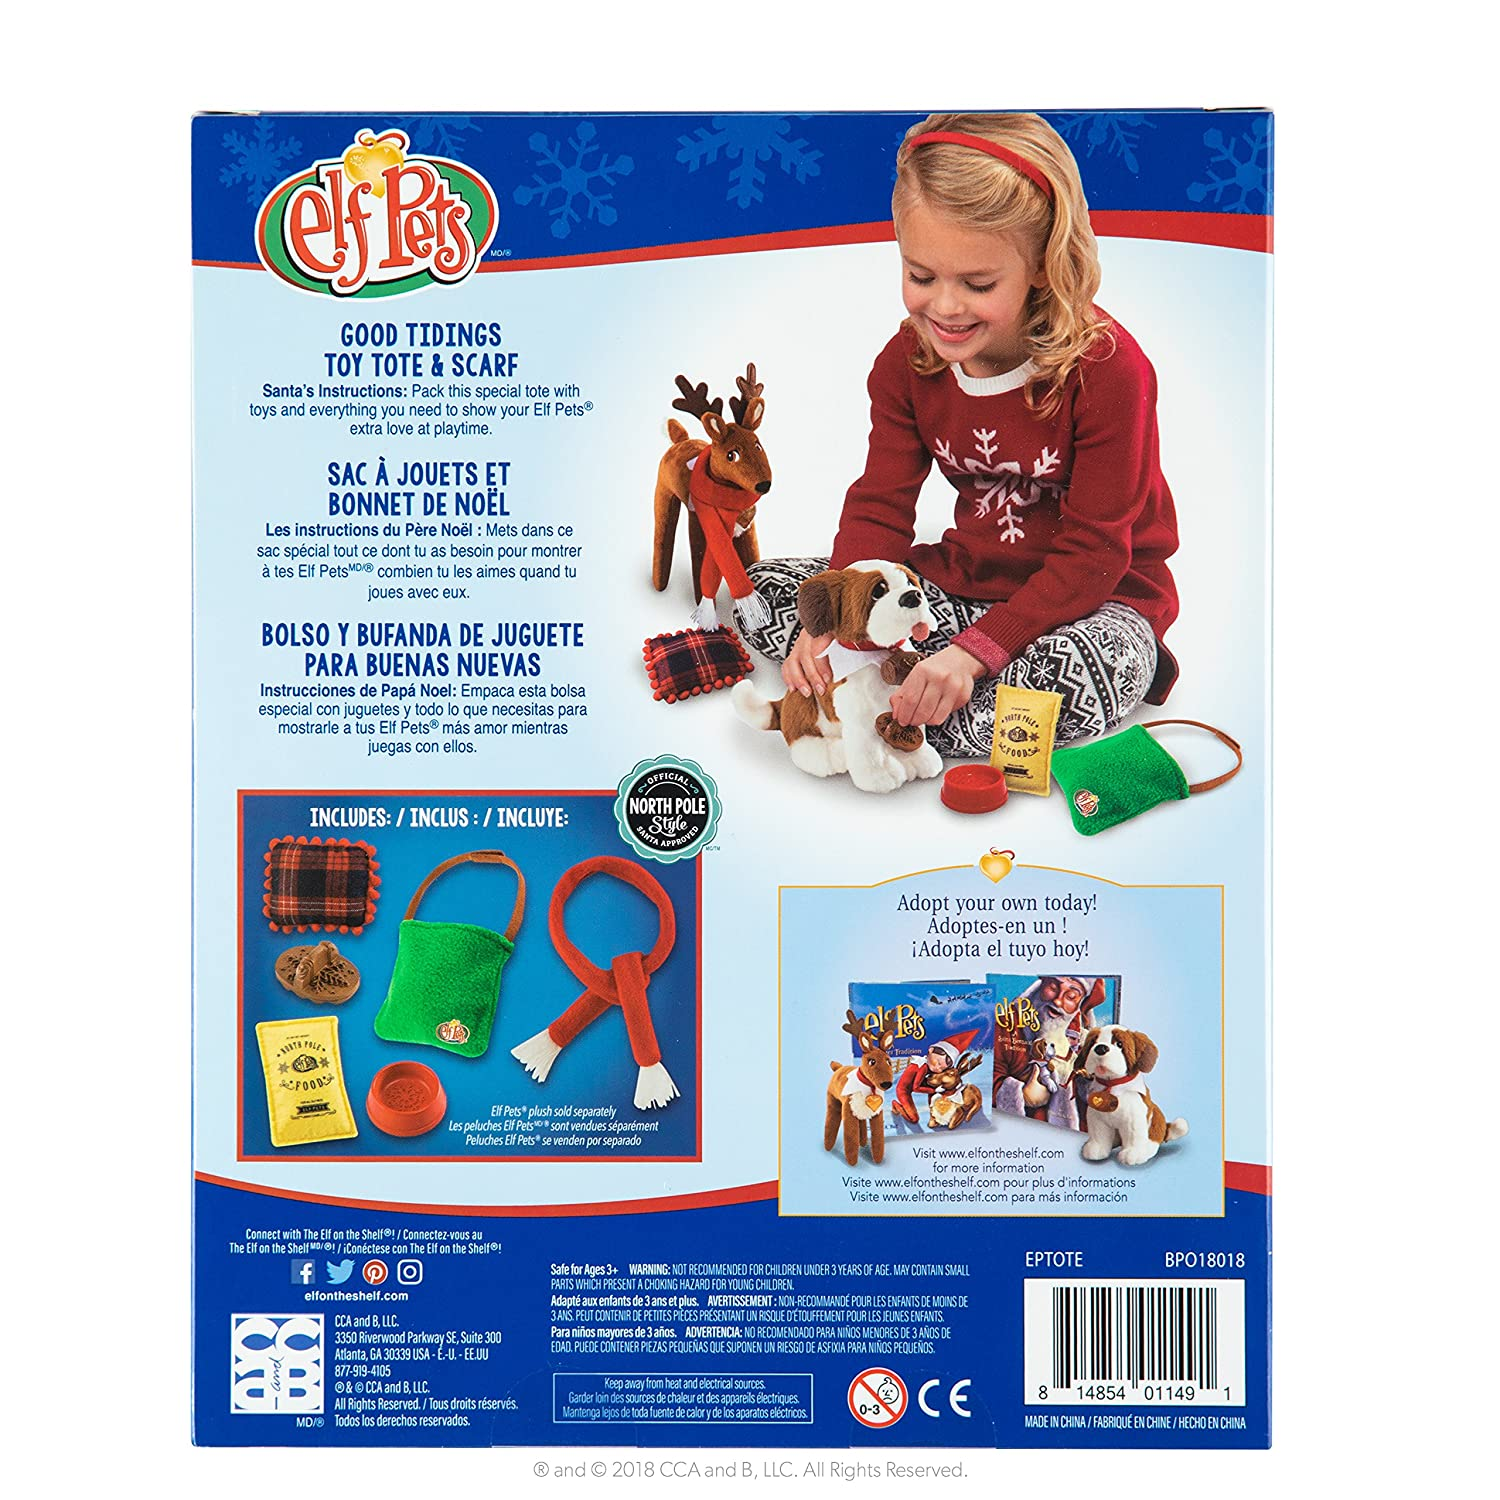 Amazon.com: The Elf on the Shelf Claus Couture Collection Good Tidings Toy Tote and Scarf: Toys & Games